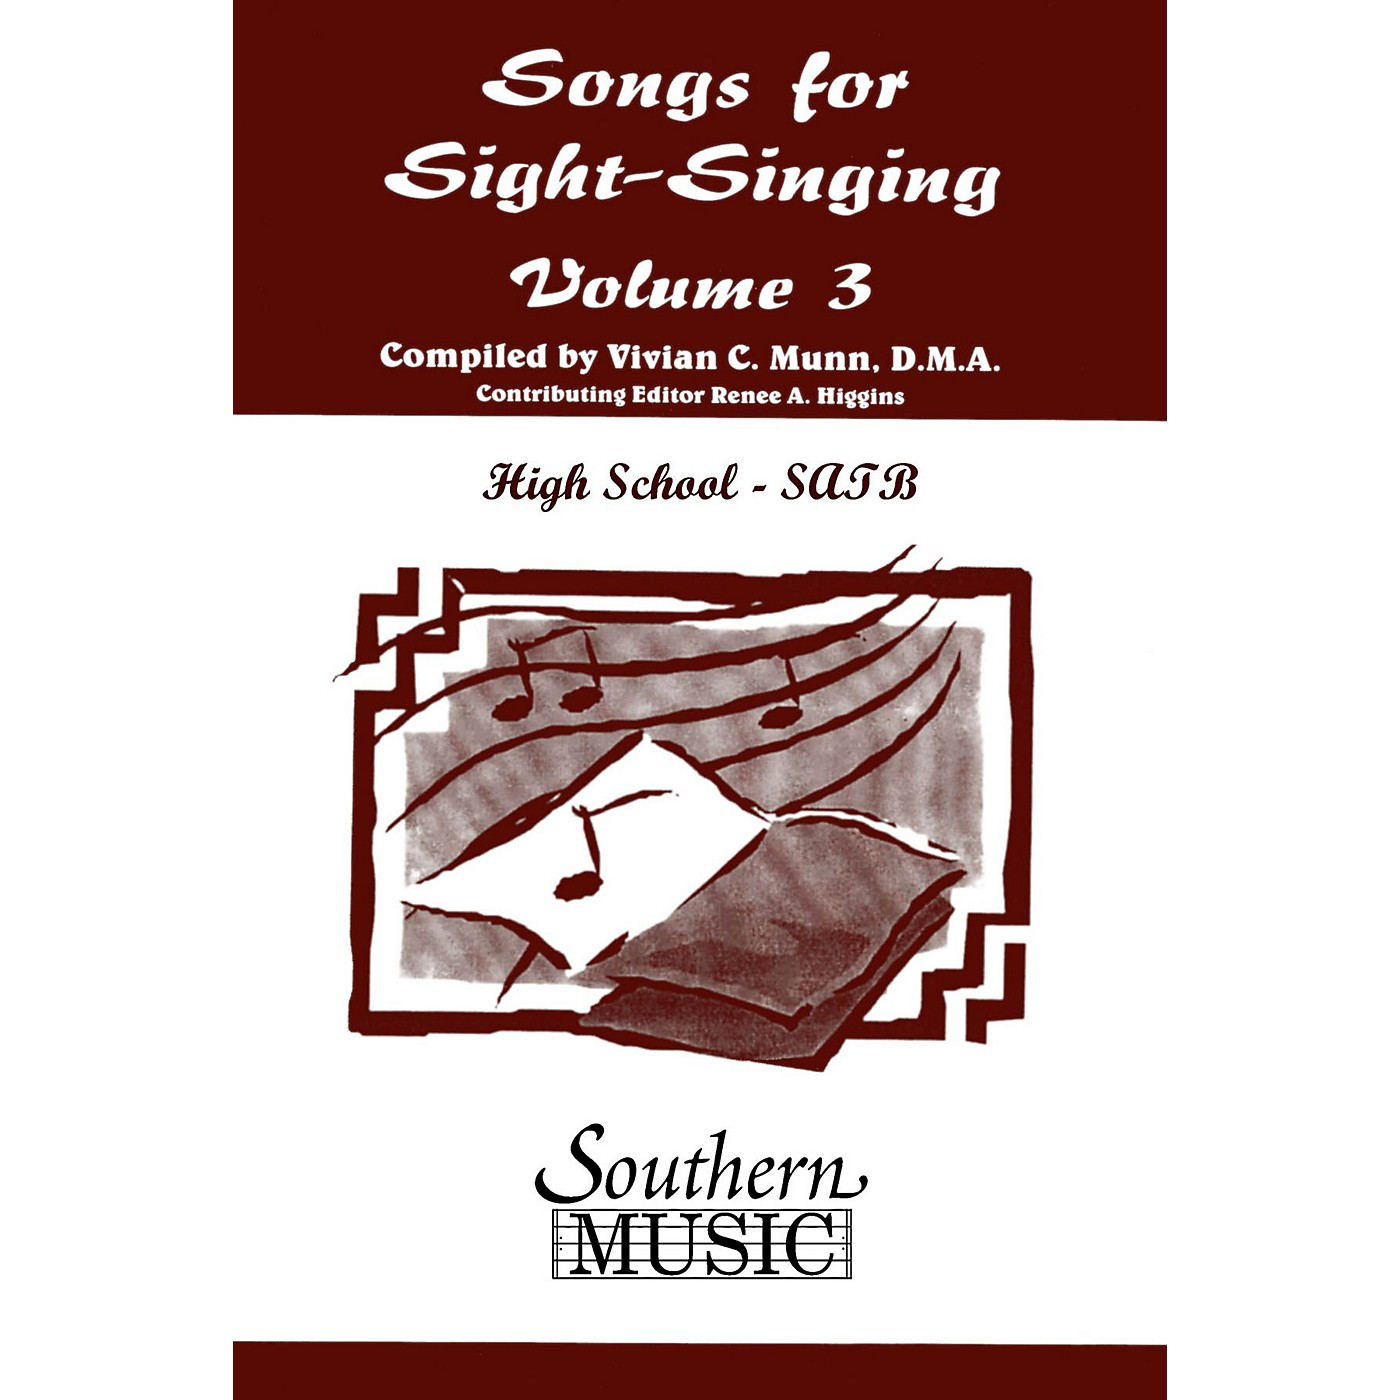 Southern Songs for Sight Singing- Volume 3 (High School Edition SATB Book) SATB Arranged by Mary Henry thumbnail